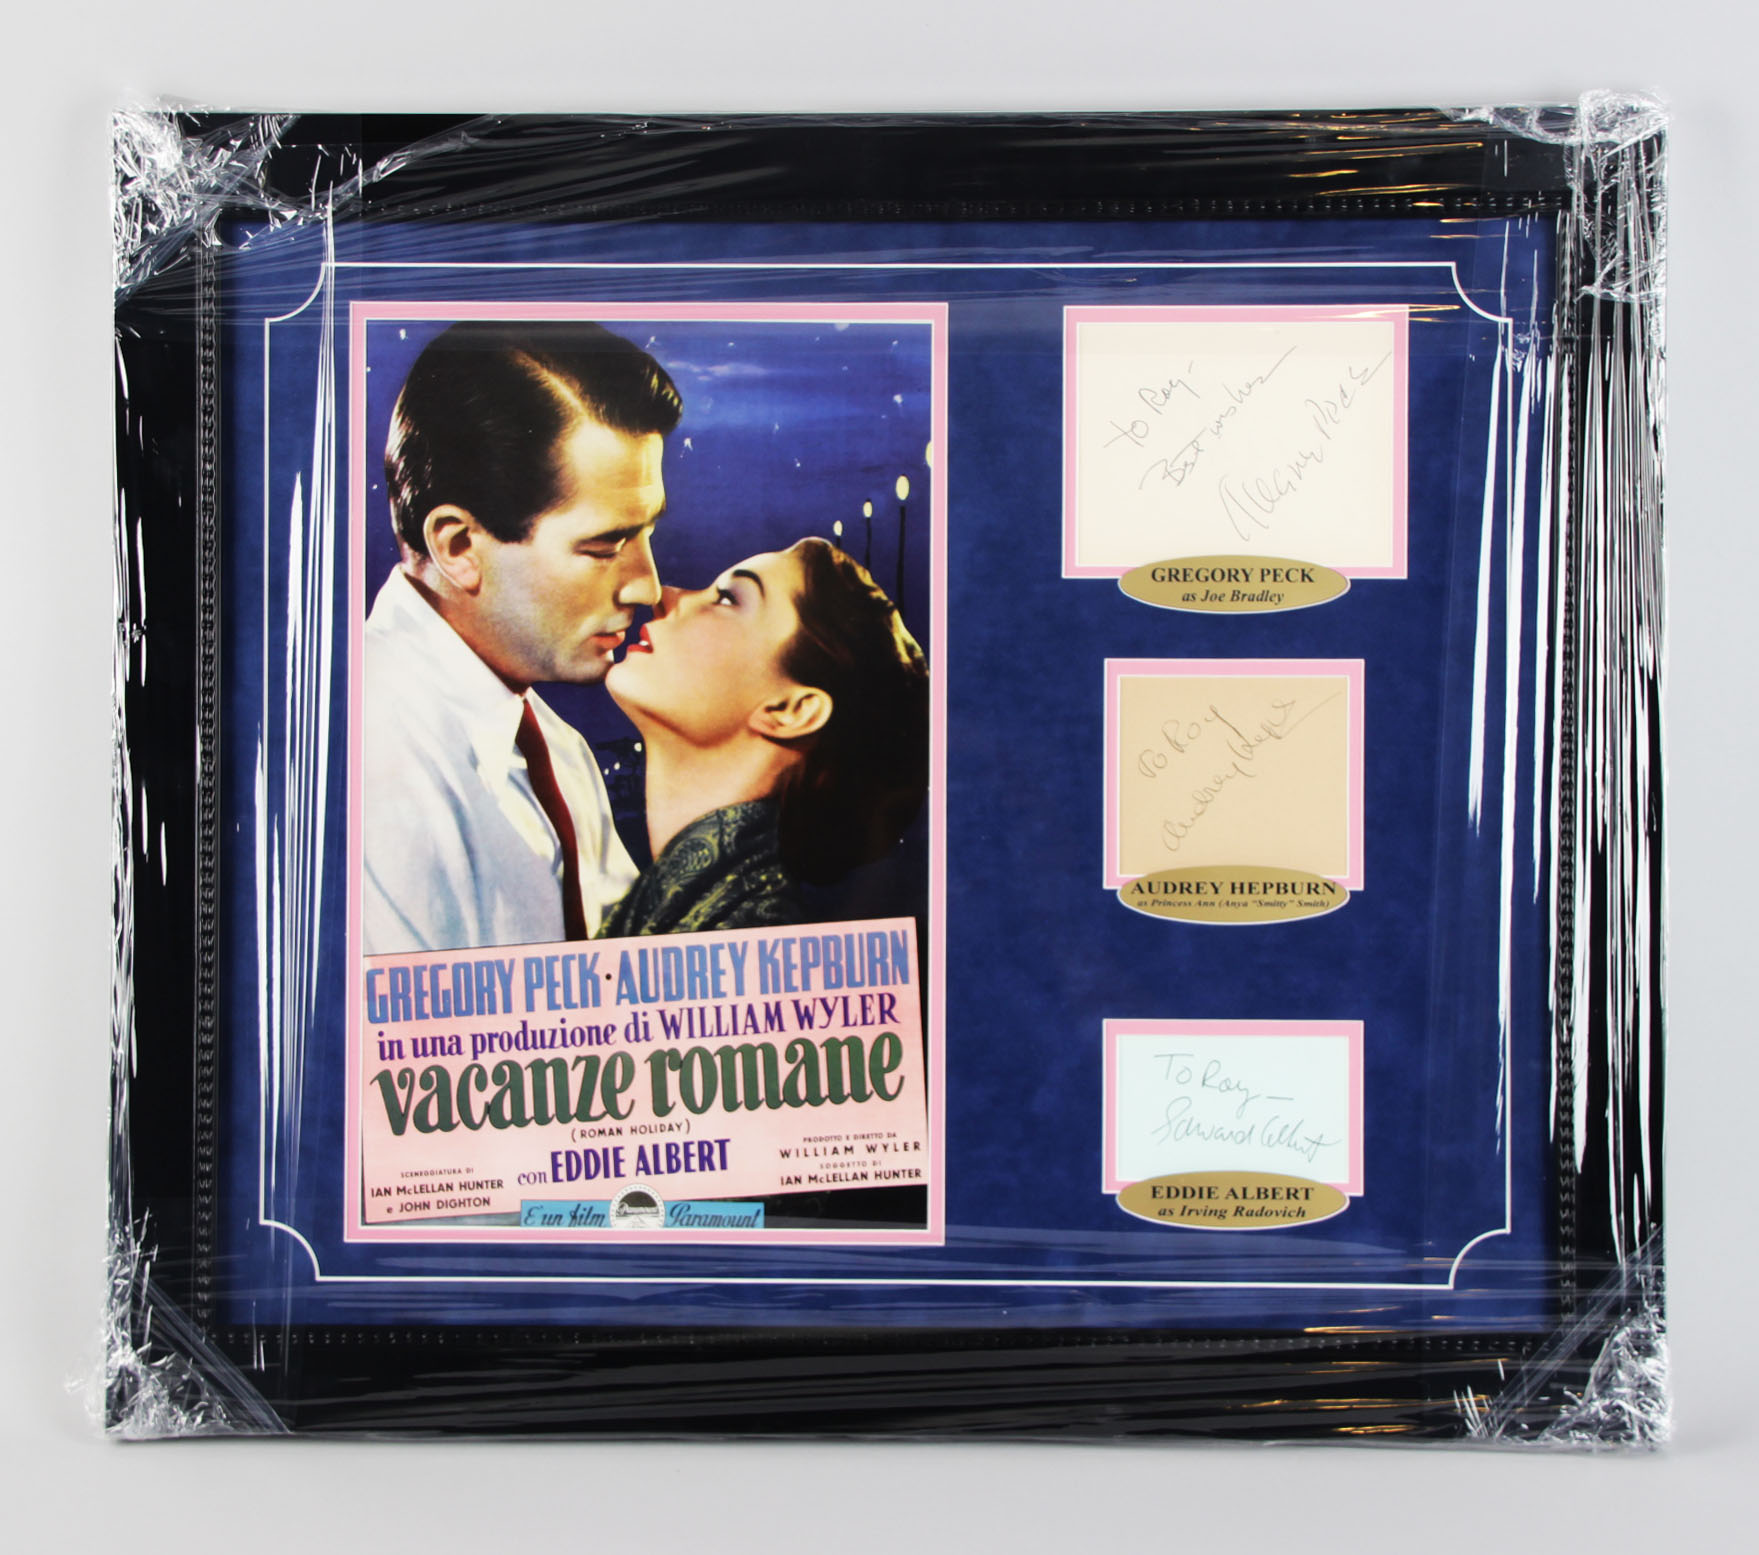 Roman Holiday – Gregory Peck, Audrey Hepburn, Eddie Albert Signed